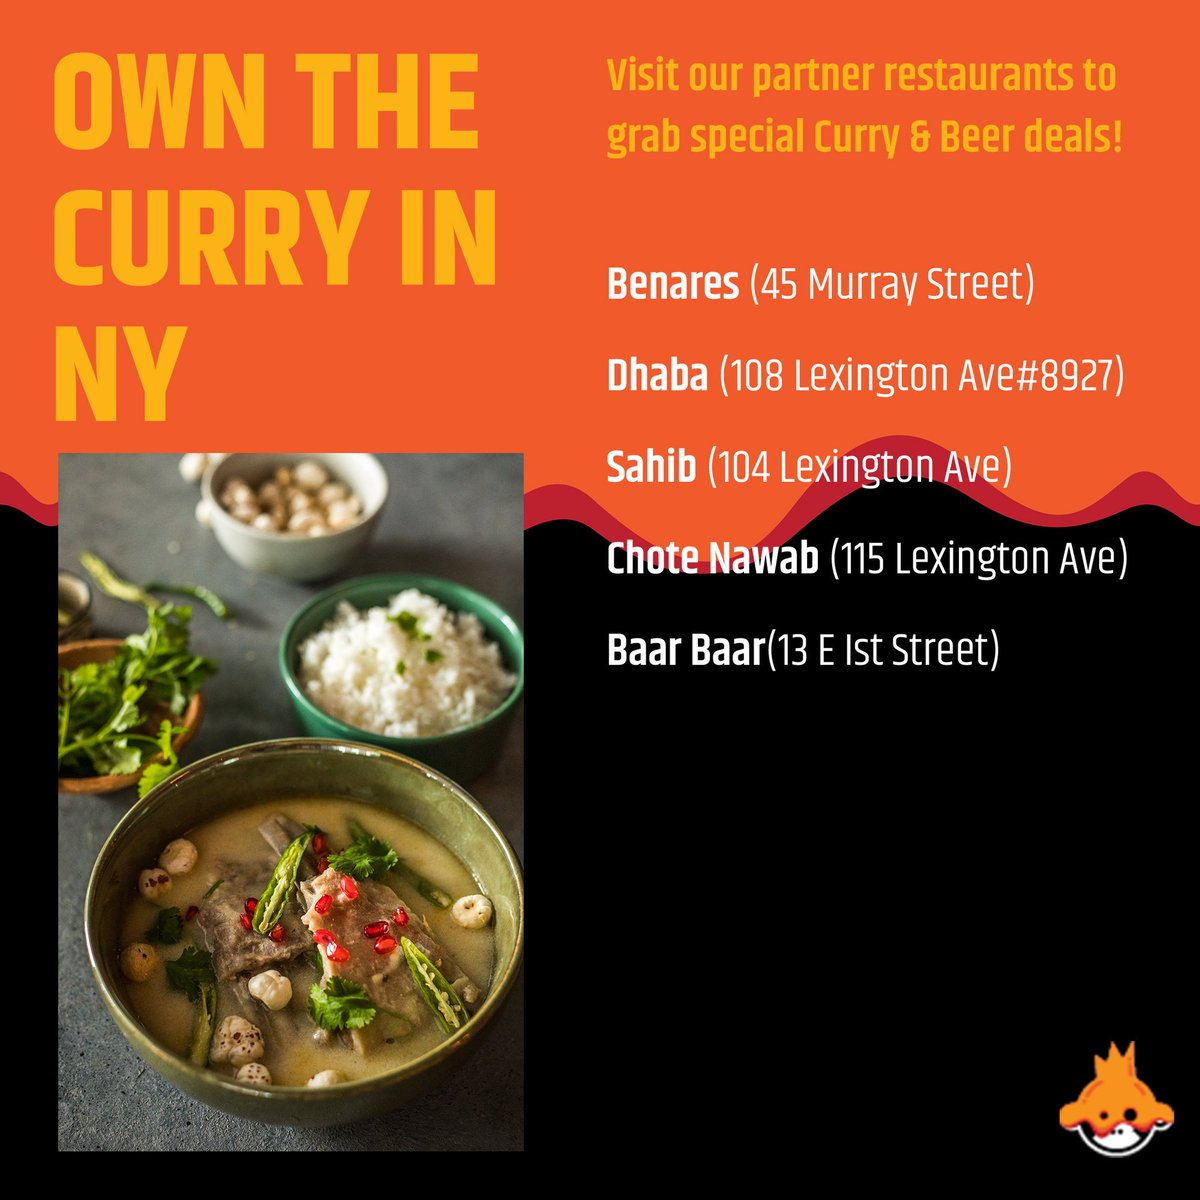 Let's celebrate culture, recipes & flavour, together! Head over to #Bira91 International Curry Week partner restaurants to enjoy lip-smacking curries, special deals on curry & beer!🥘 . . . #GotCurry #ICW2019 #InternationalCurryWeek #Bira91Beer https://t.co/mcbwWi3xoG